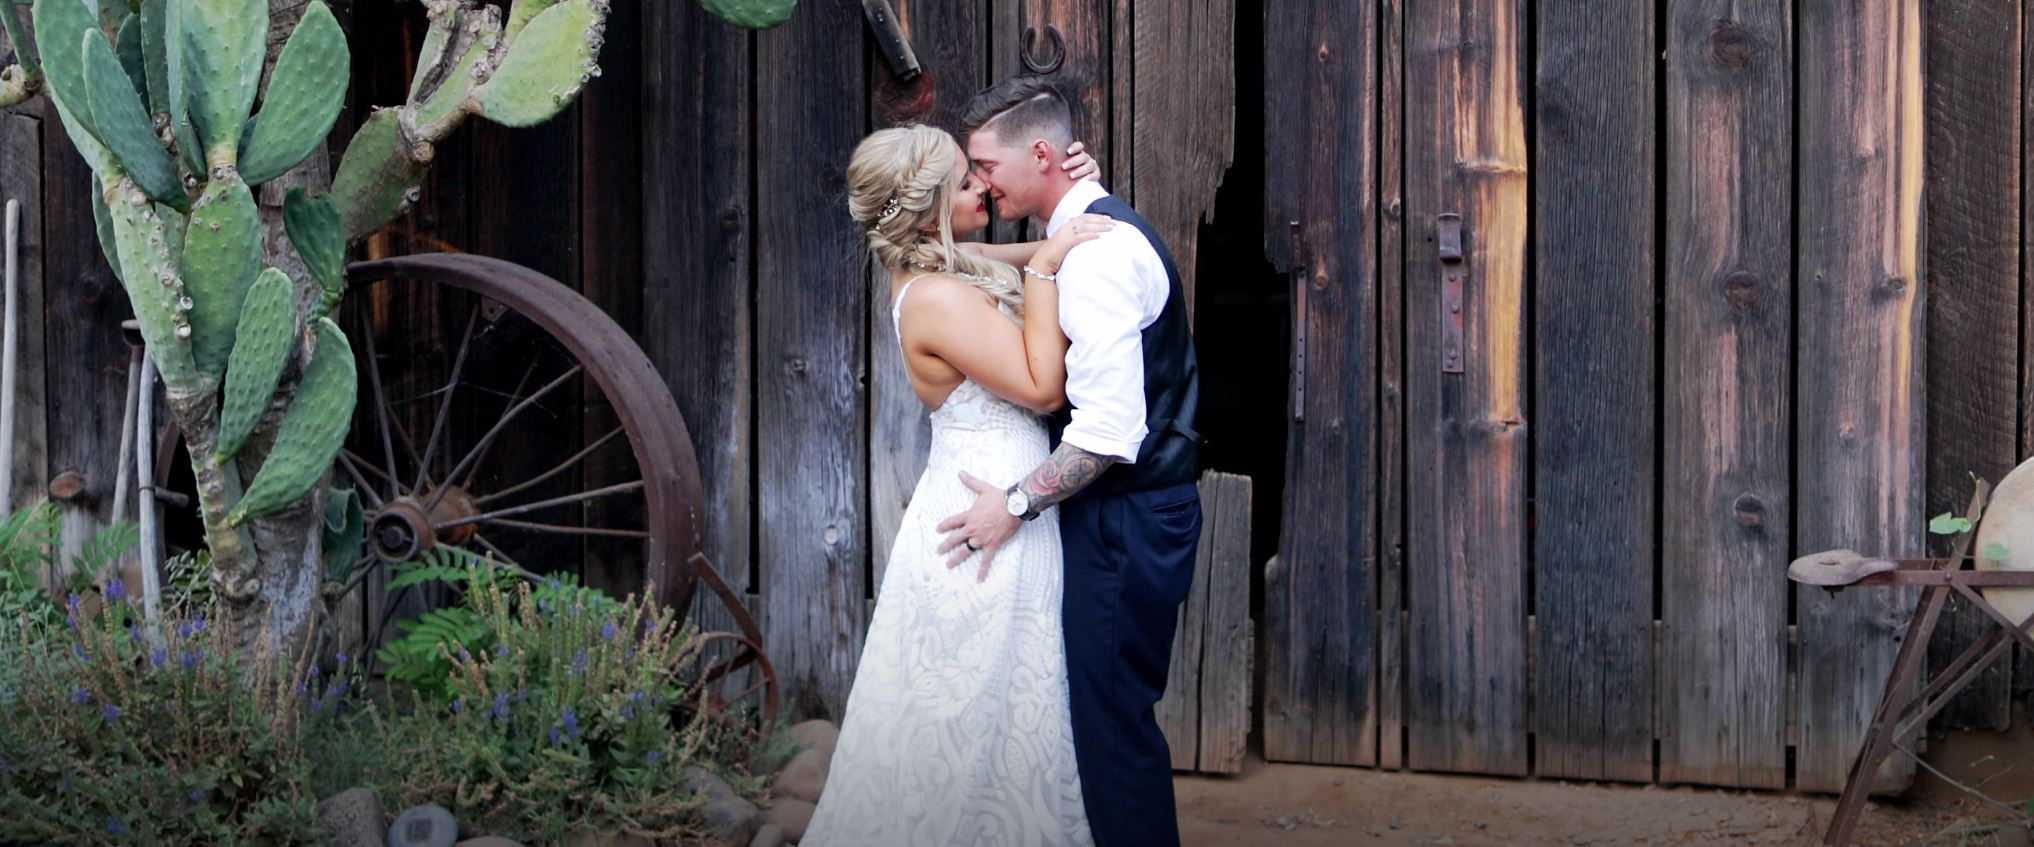 Bride and Groom Hugging in front of Barn at the White Ranch Events Venue in Chico, Ca